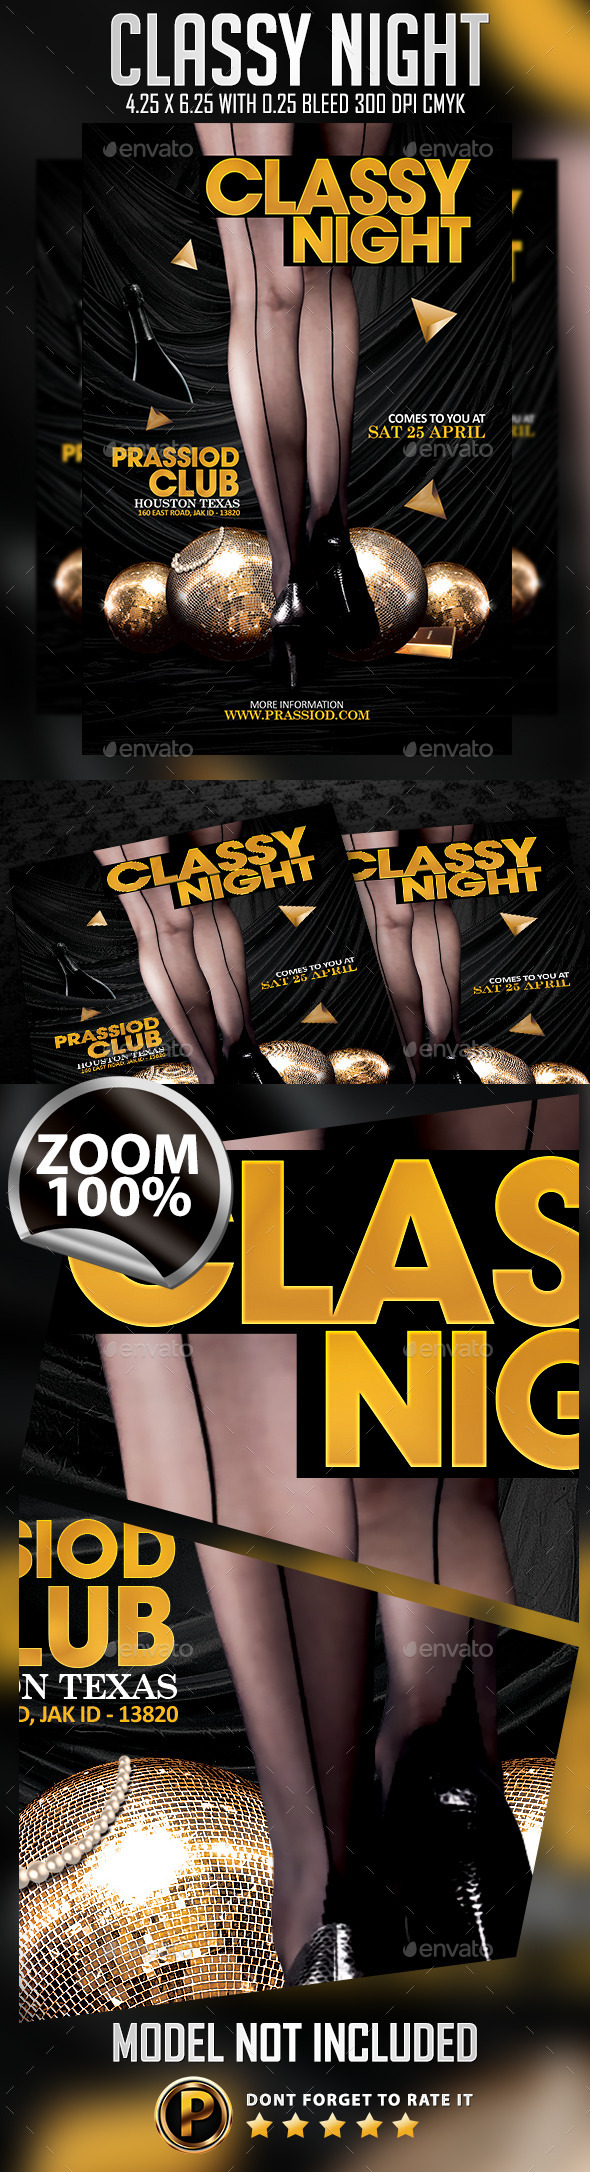 Classy Night Flyer Template - Clubs & Parties Events